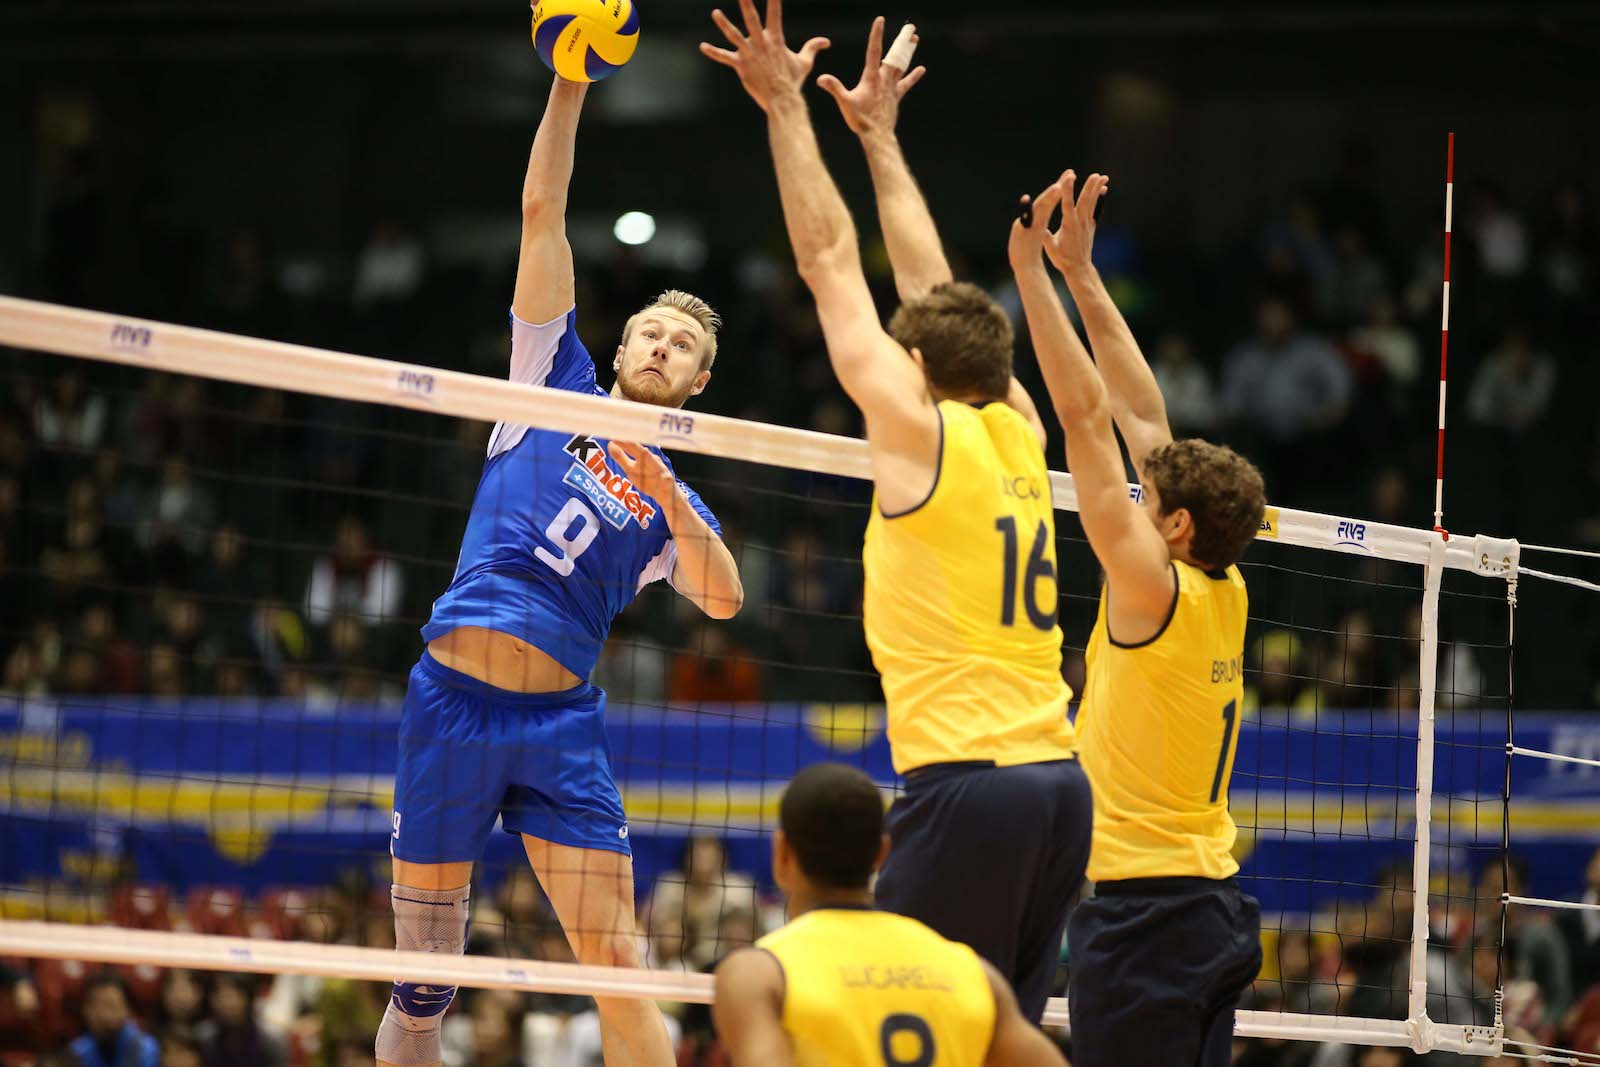 Match Volley France - Bresil en direct streaming live